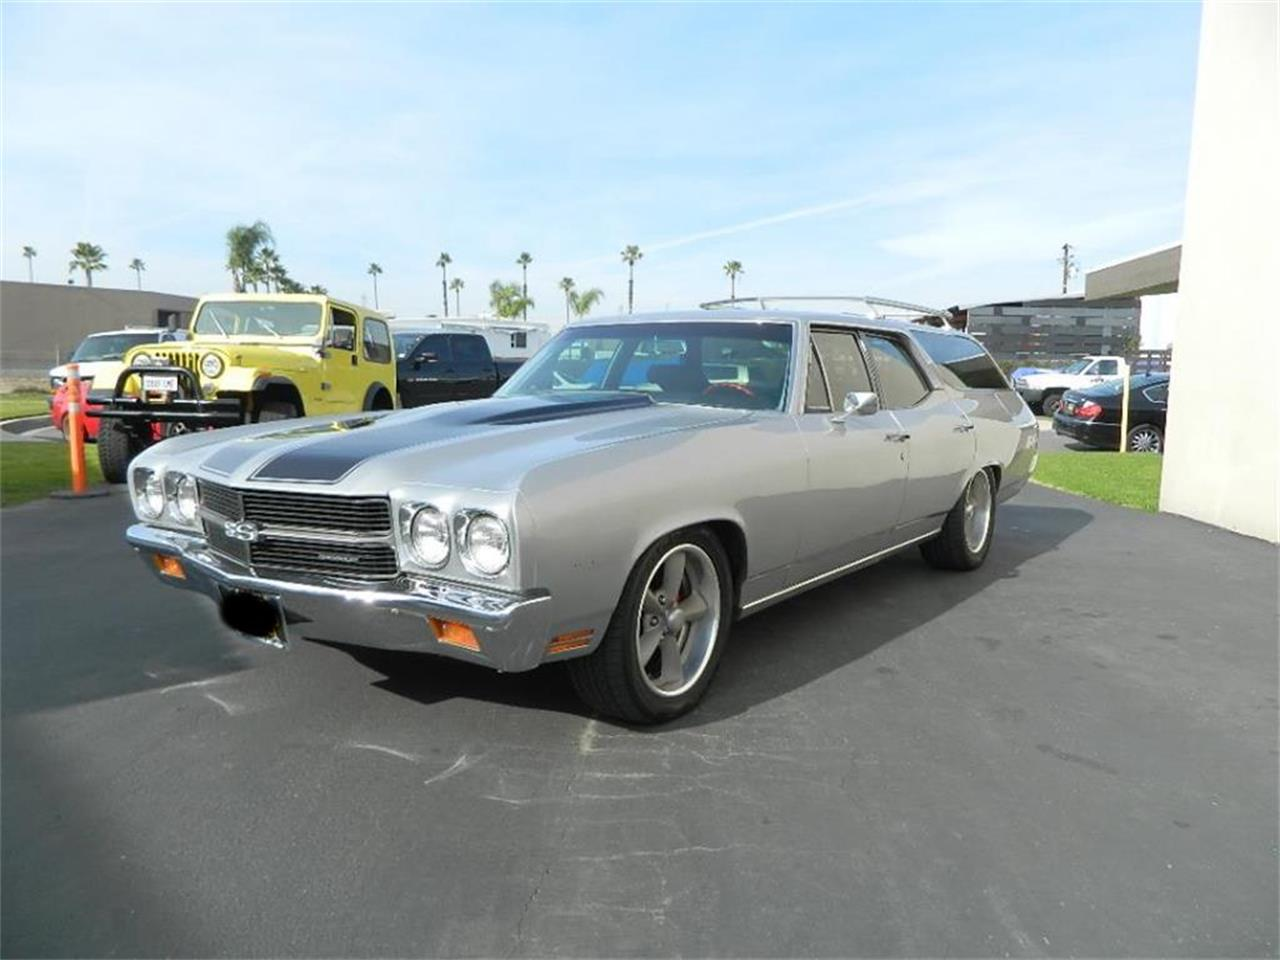 Large Picture of Classic 1970 Chevelle located in California - $39,500.00 Offered by Classic Car Marketing, Inc. - KHOM